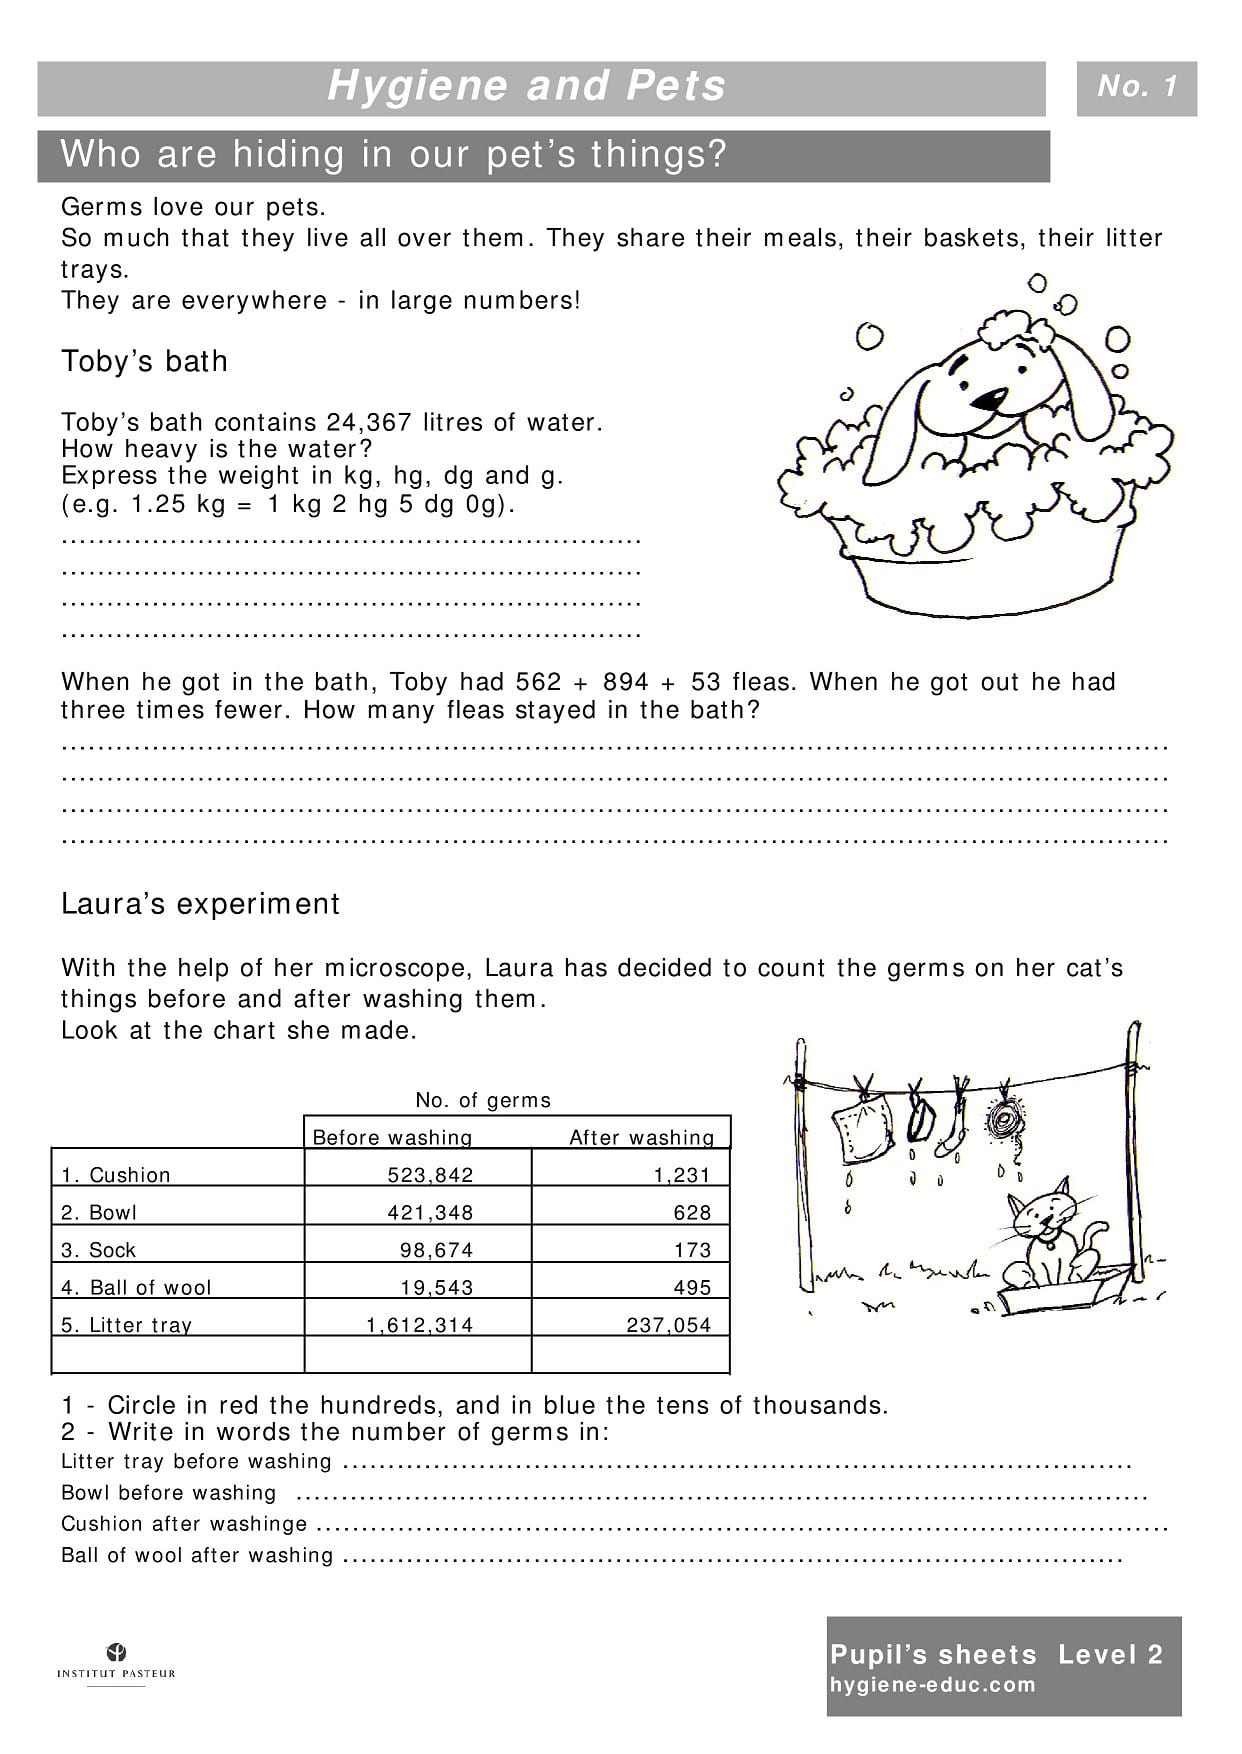 Hygiene And Pets Worksheets For Kids Level 2 Personal